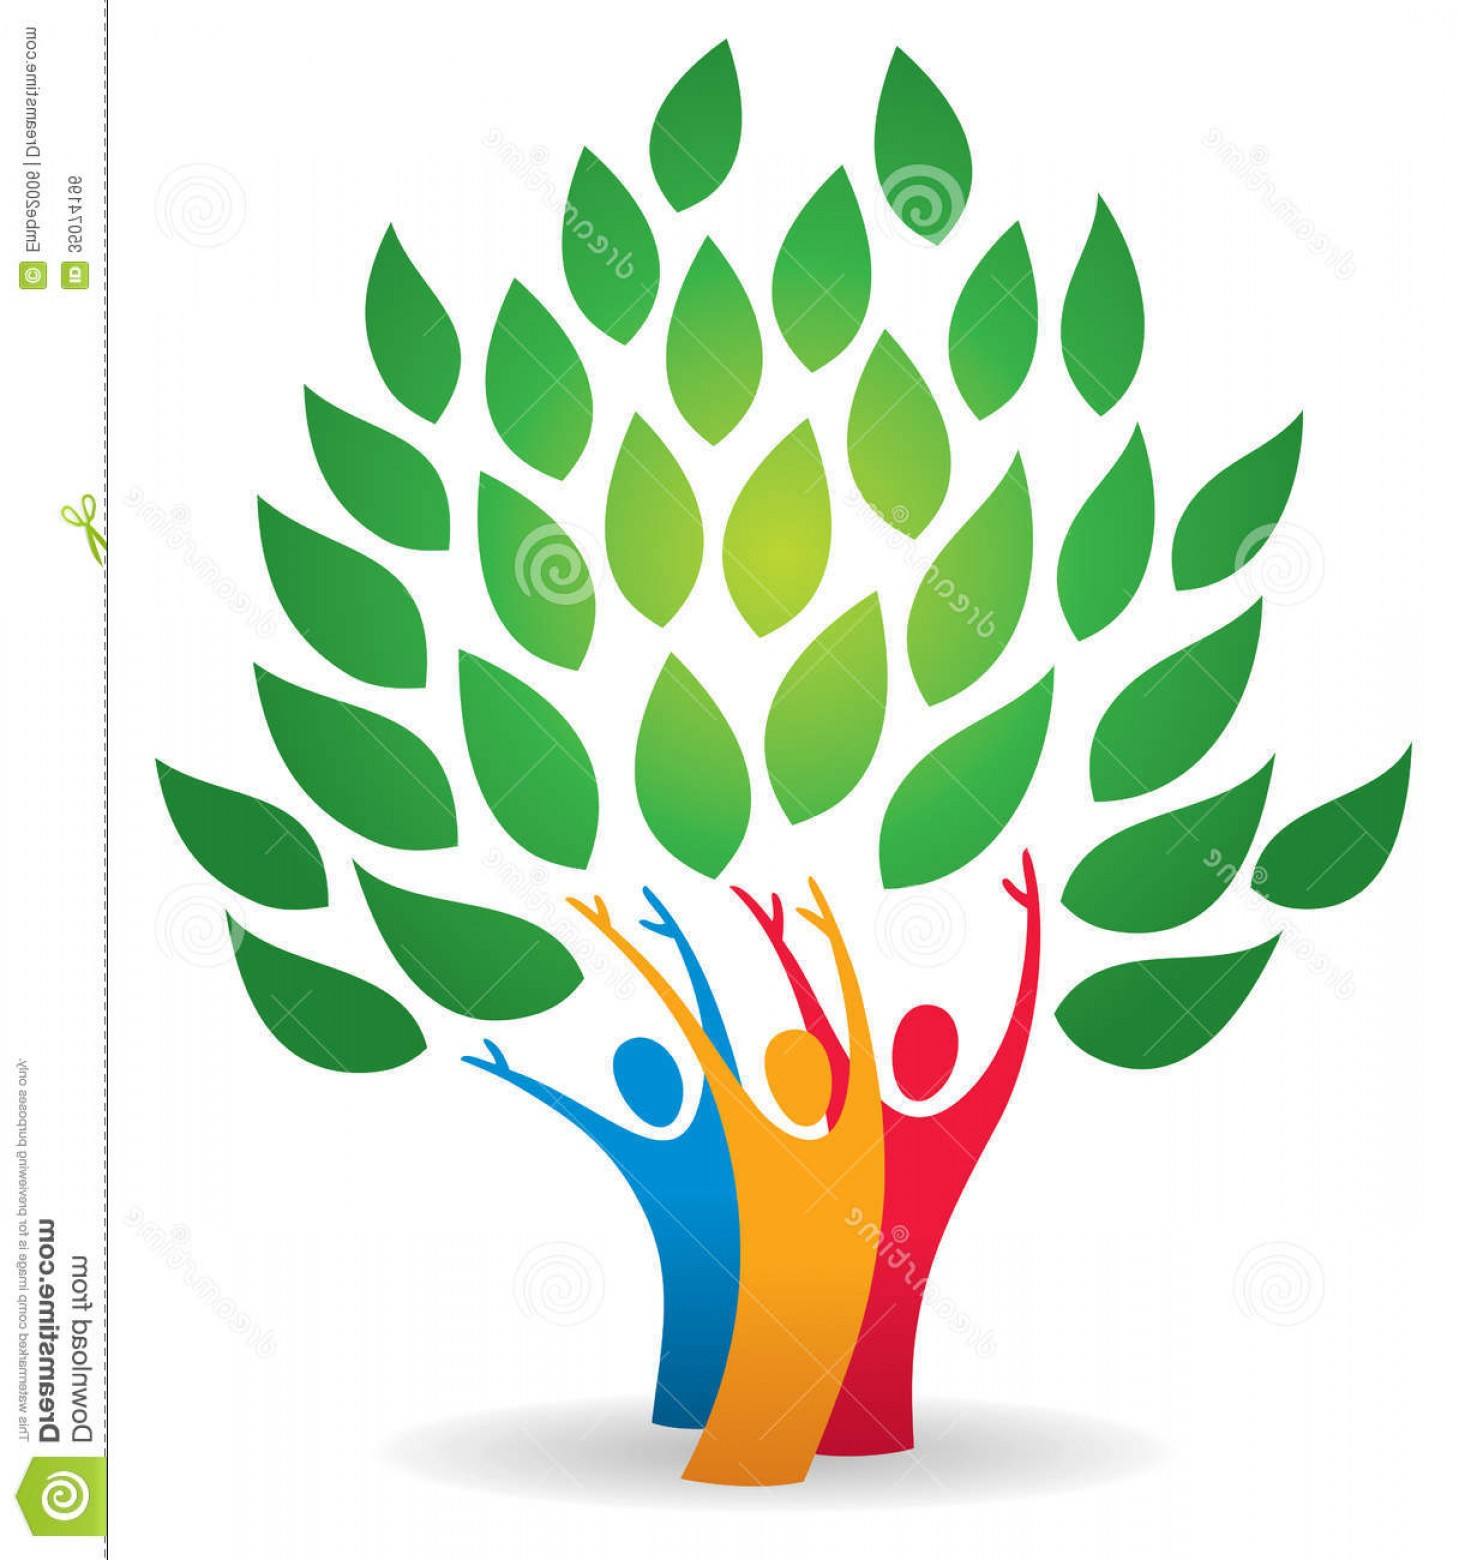 Family Reunion Vector Symbol: Royalty Free Stock Image Family Tree Logo Leaves Icon Image